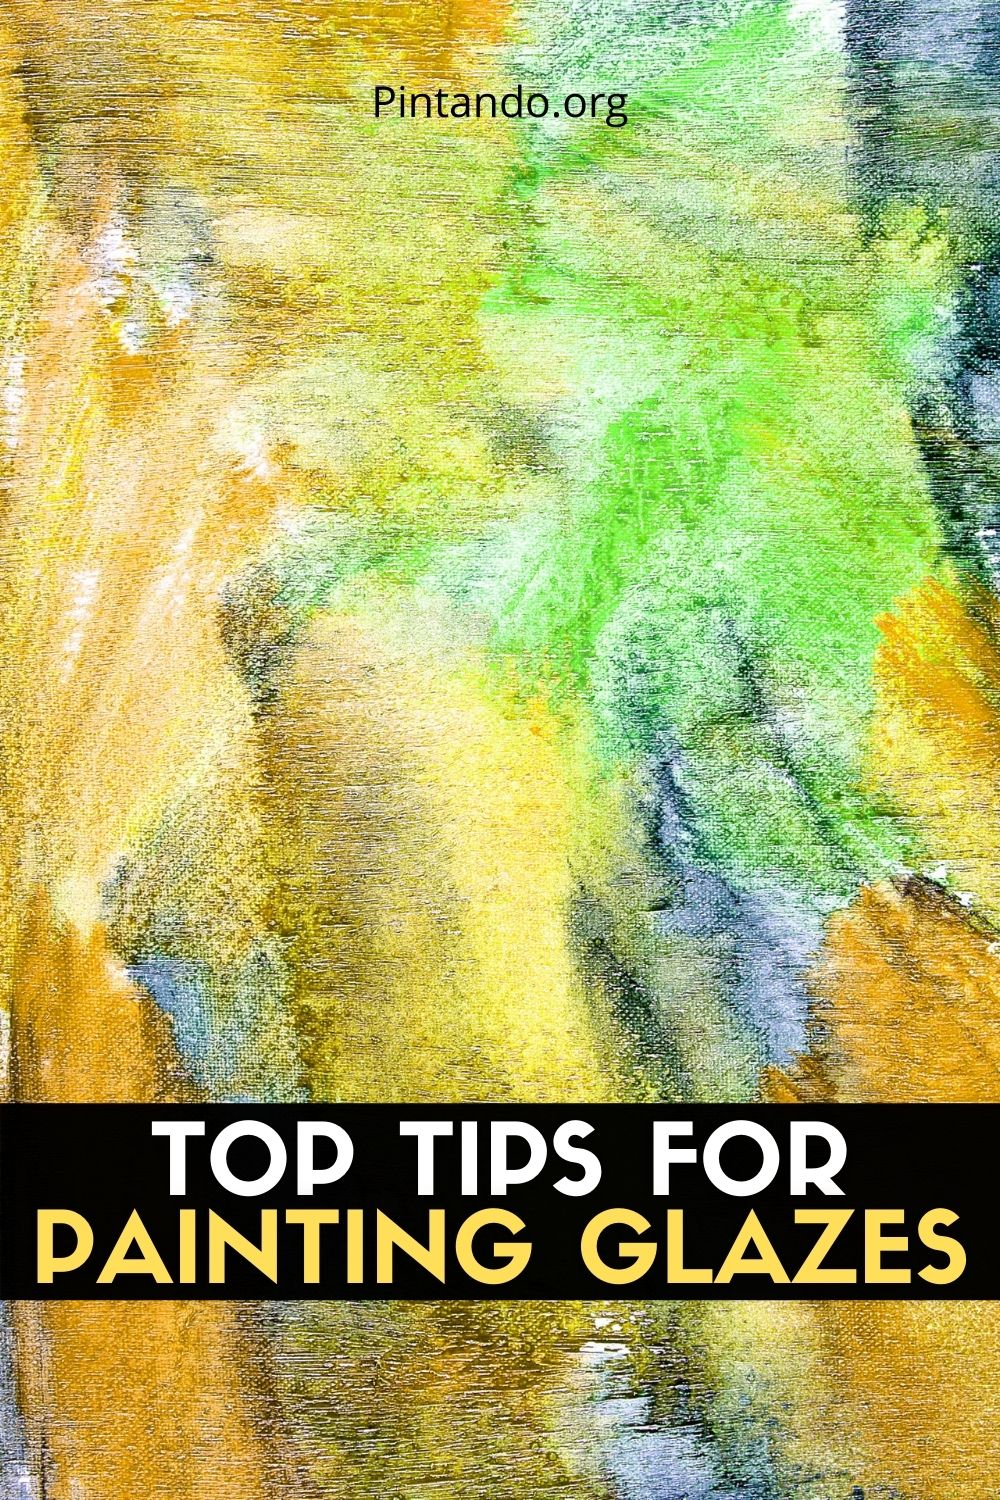 TOP TIPS FOR PAINTING GLAZES